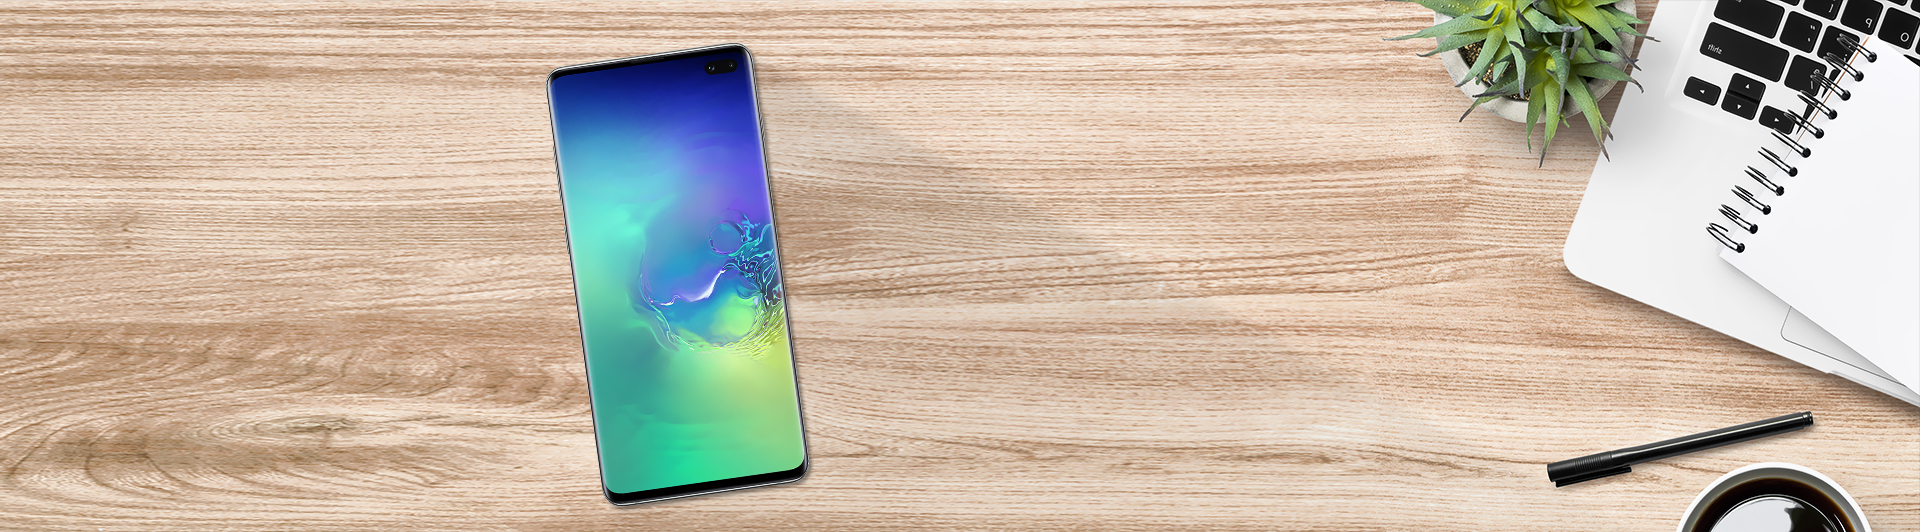 SAMSUNG GALAXY S10 PLUS 128GB XANH